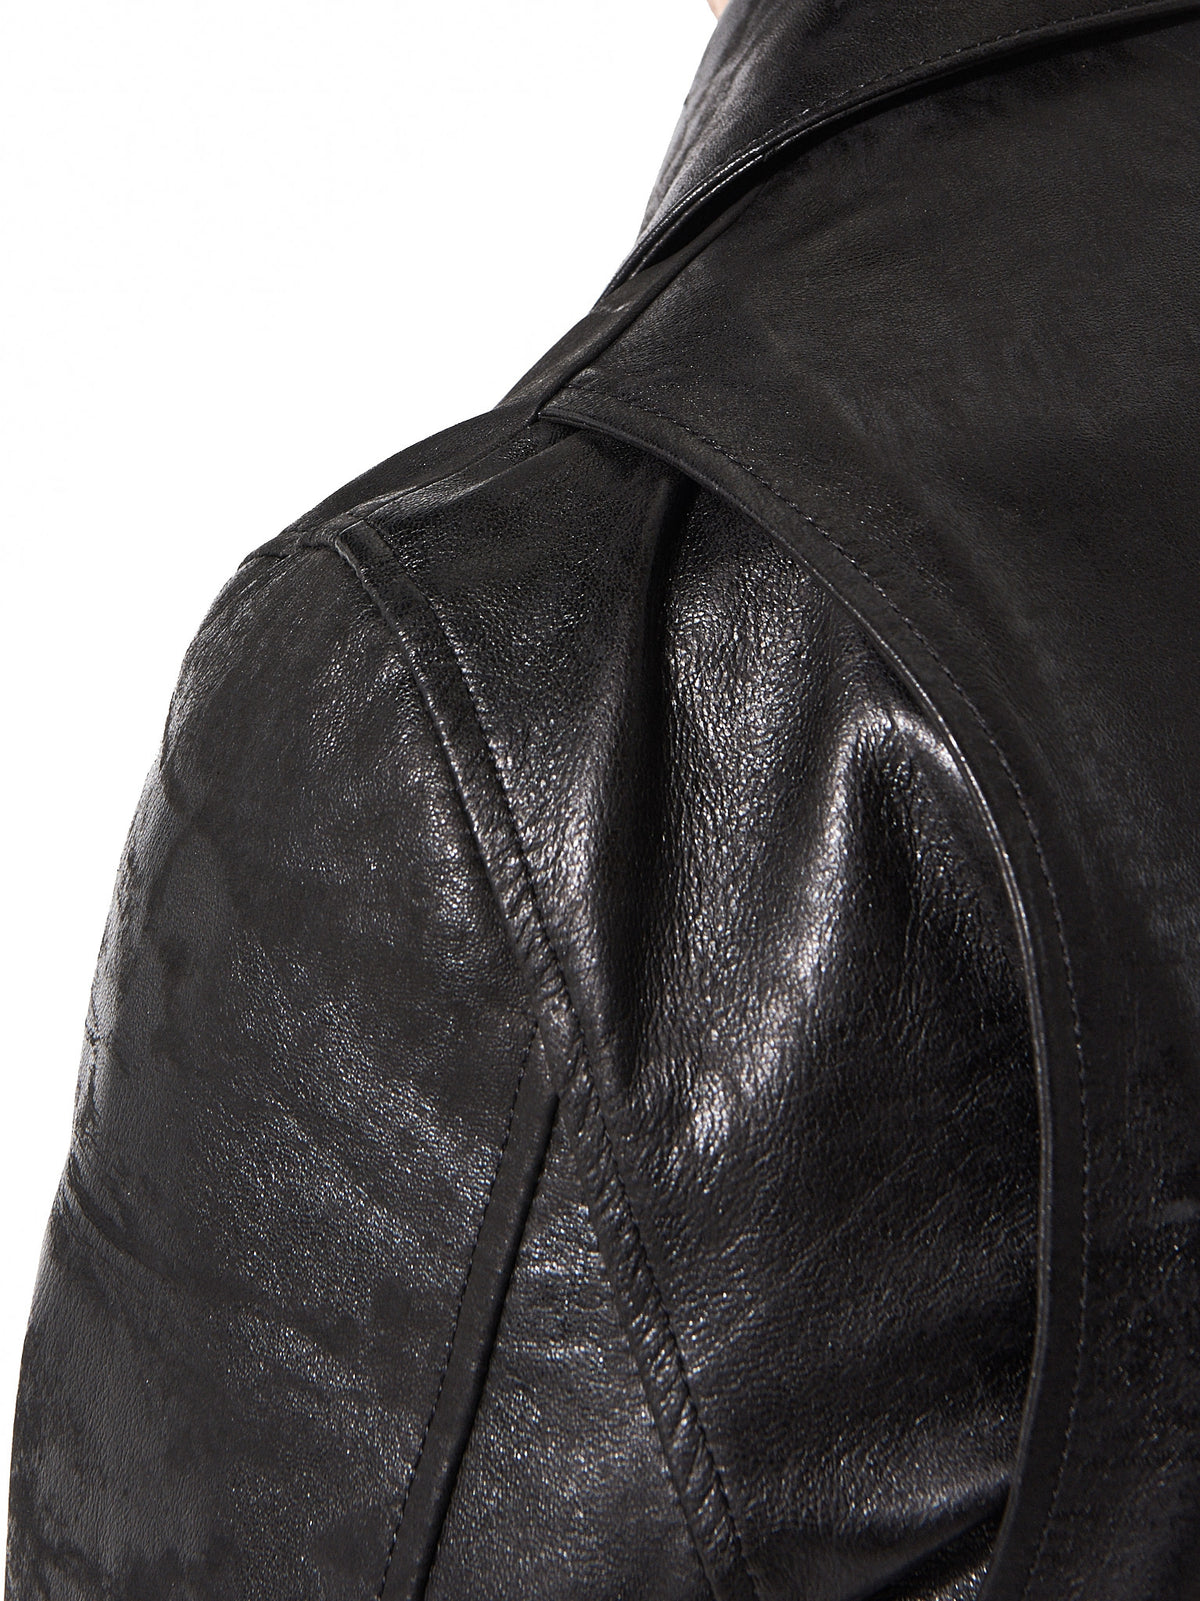 Signature Motorcycle Jacket (CD-17S-1107 BLACK) - H. Lorenzo